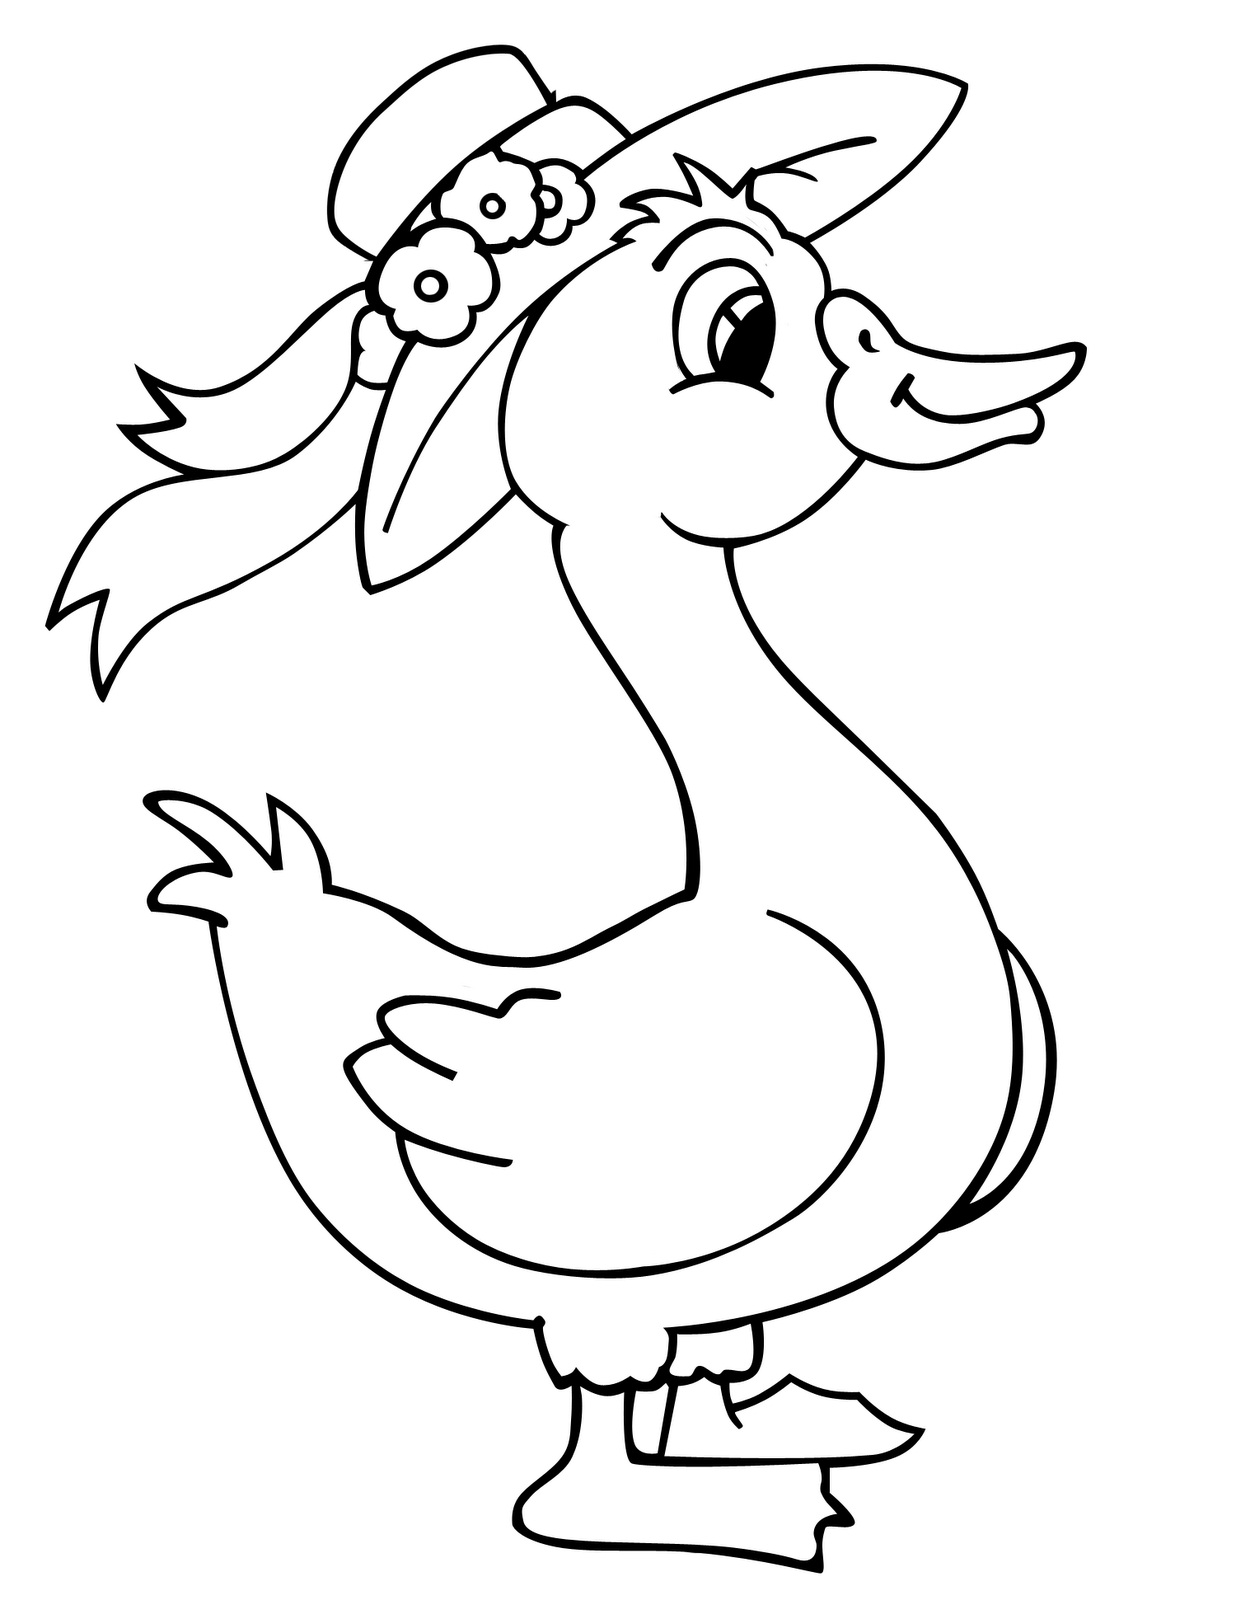 coloring image of duck duck cartoon coloring page free printable duck images of coloring image duck